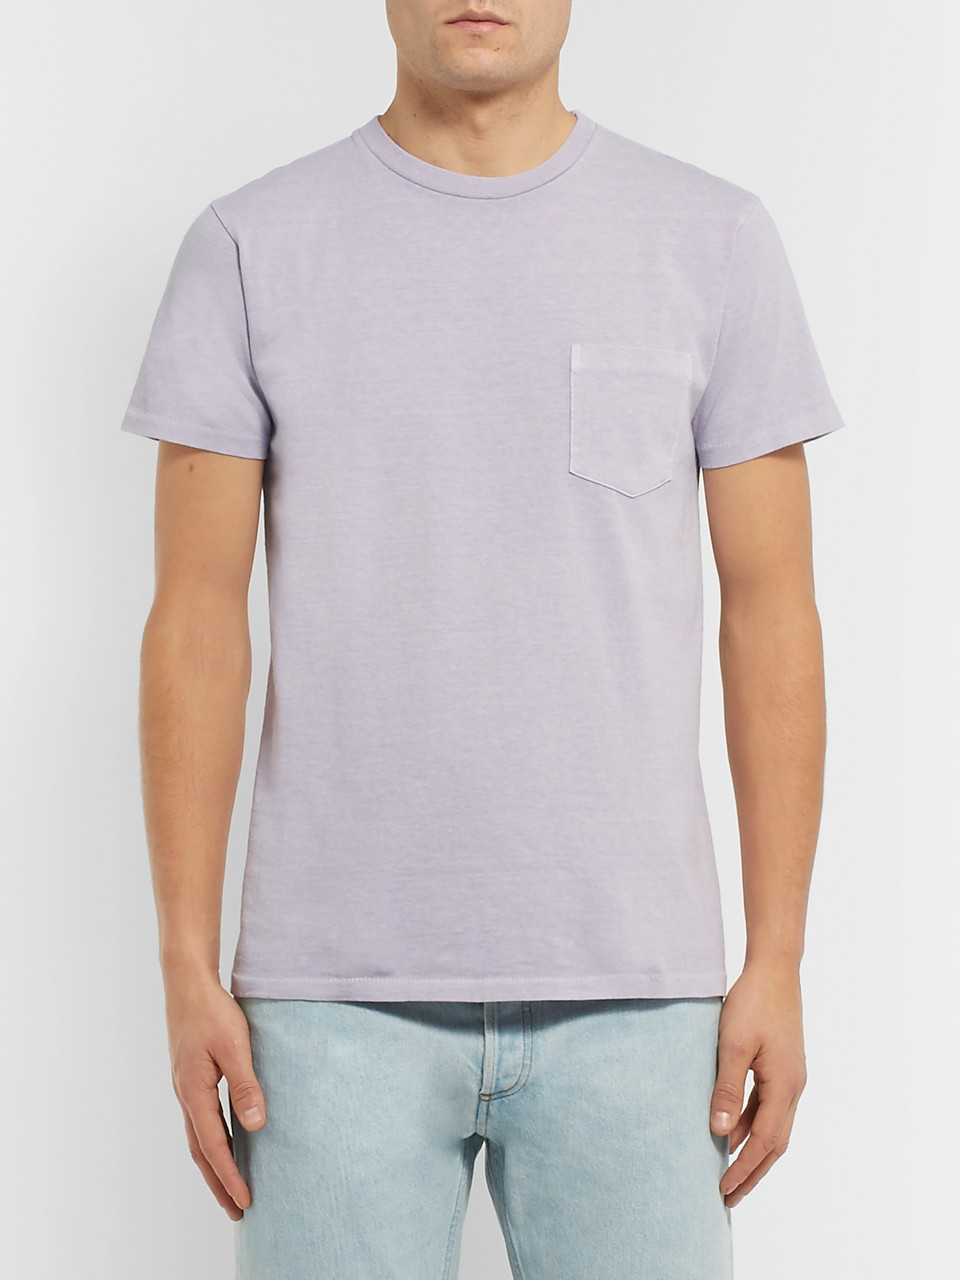 Velva Sheen Slim-Fit Cotton-Jersey T-Shirt